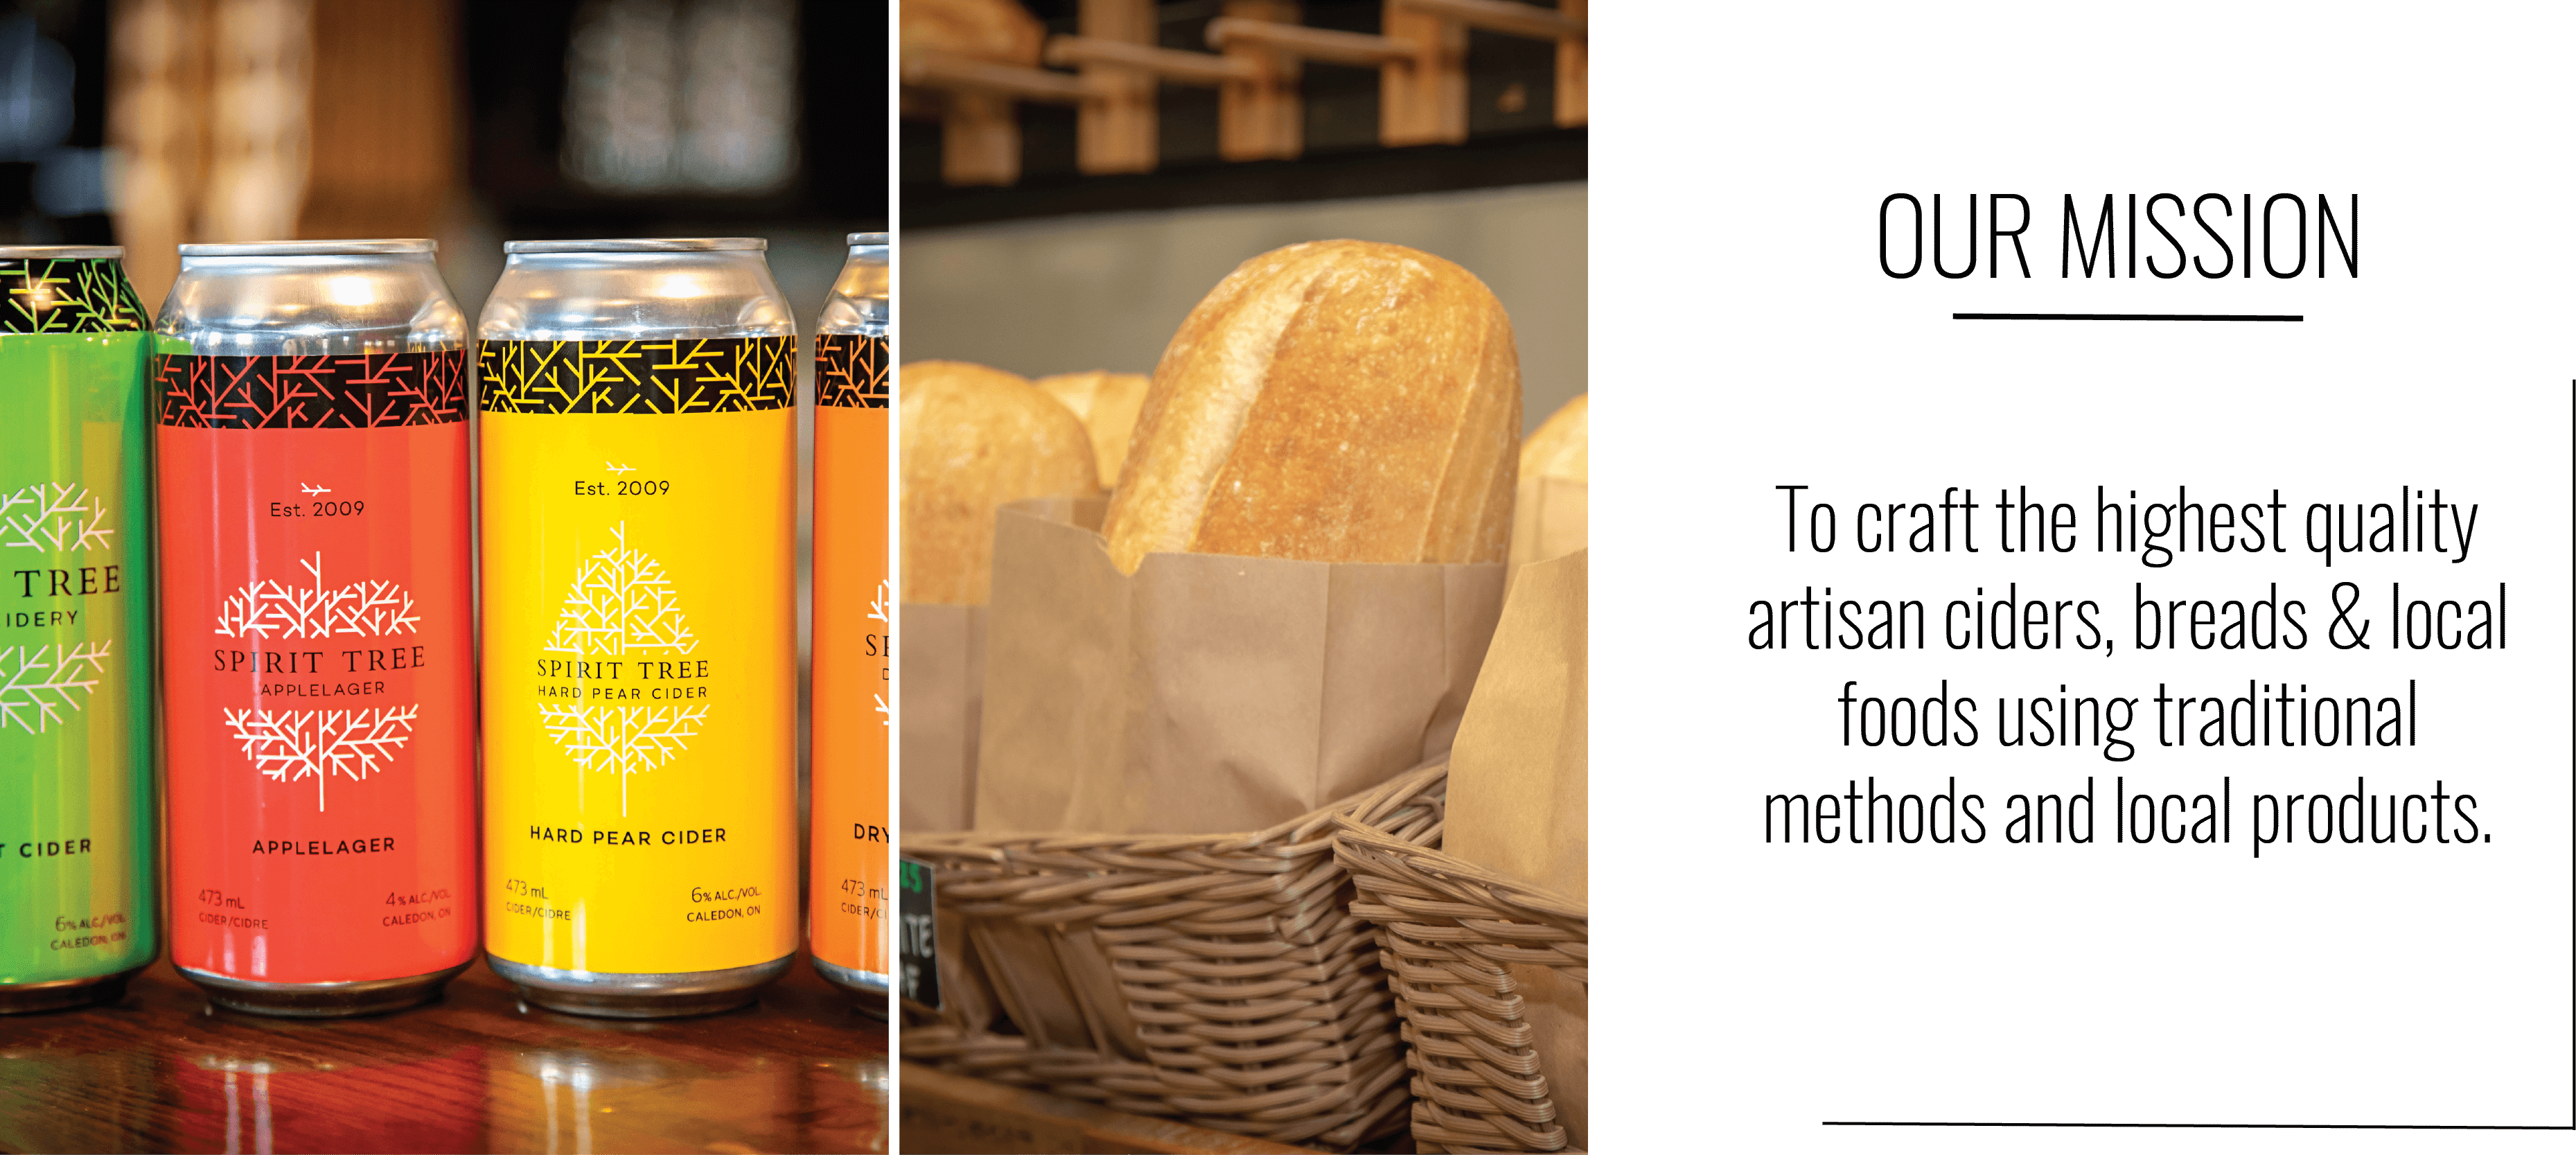 To craft the highest quality artisan ciders, breads & local foods using traditional methods and local products.